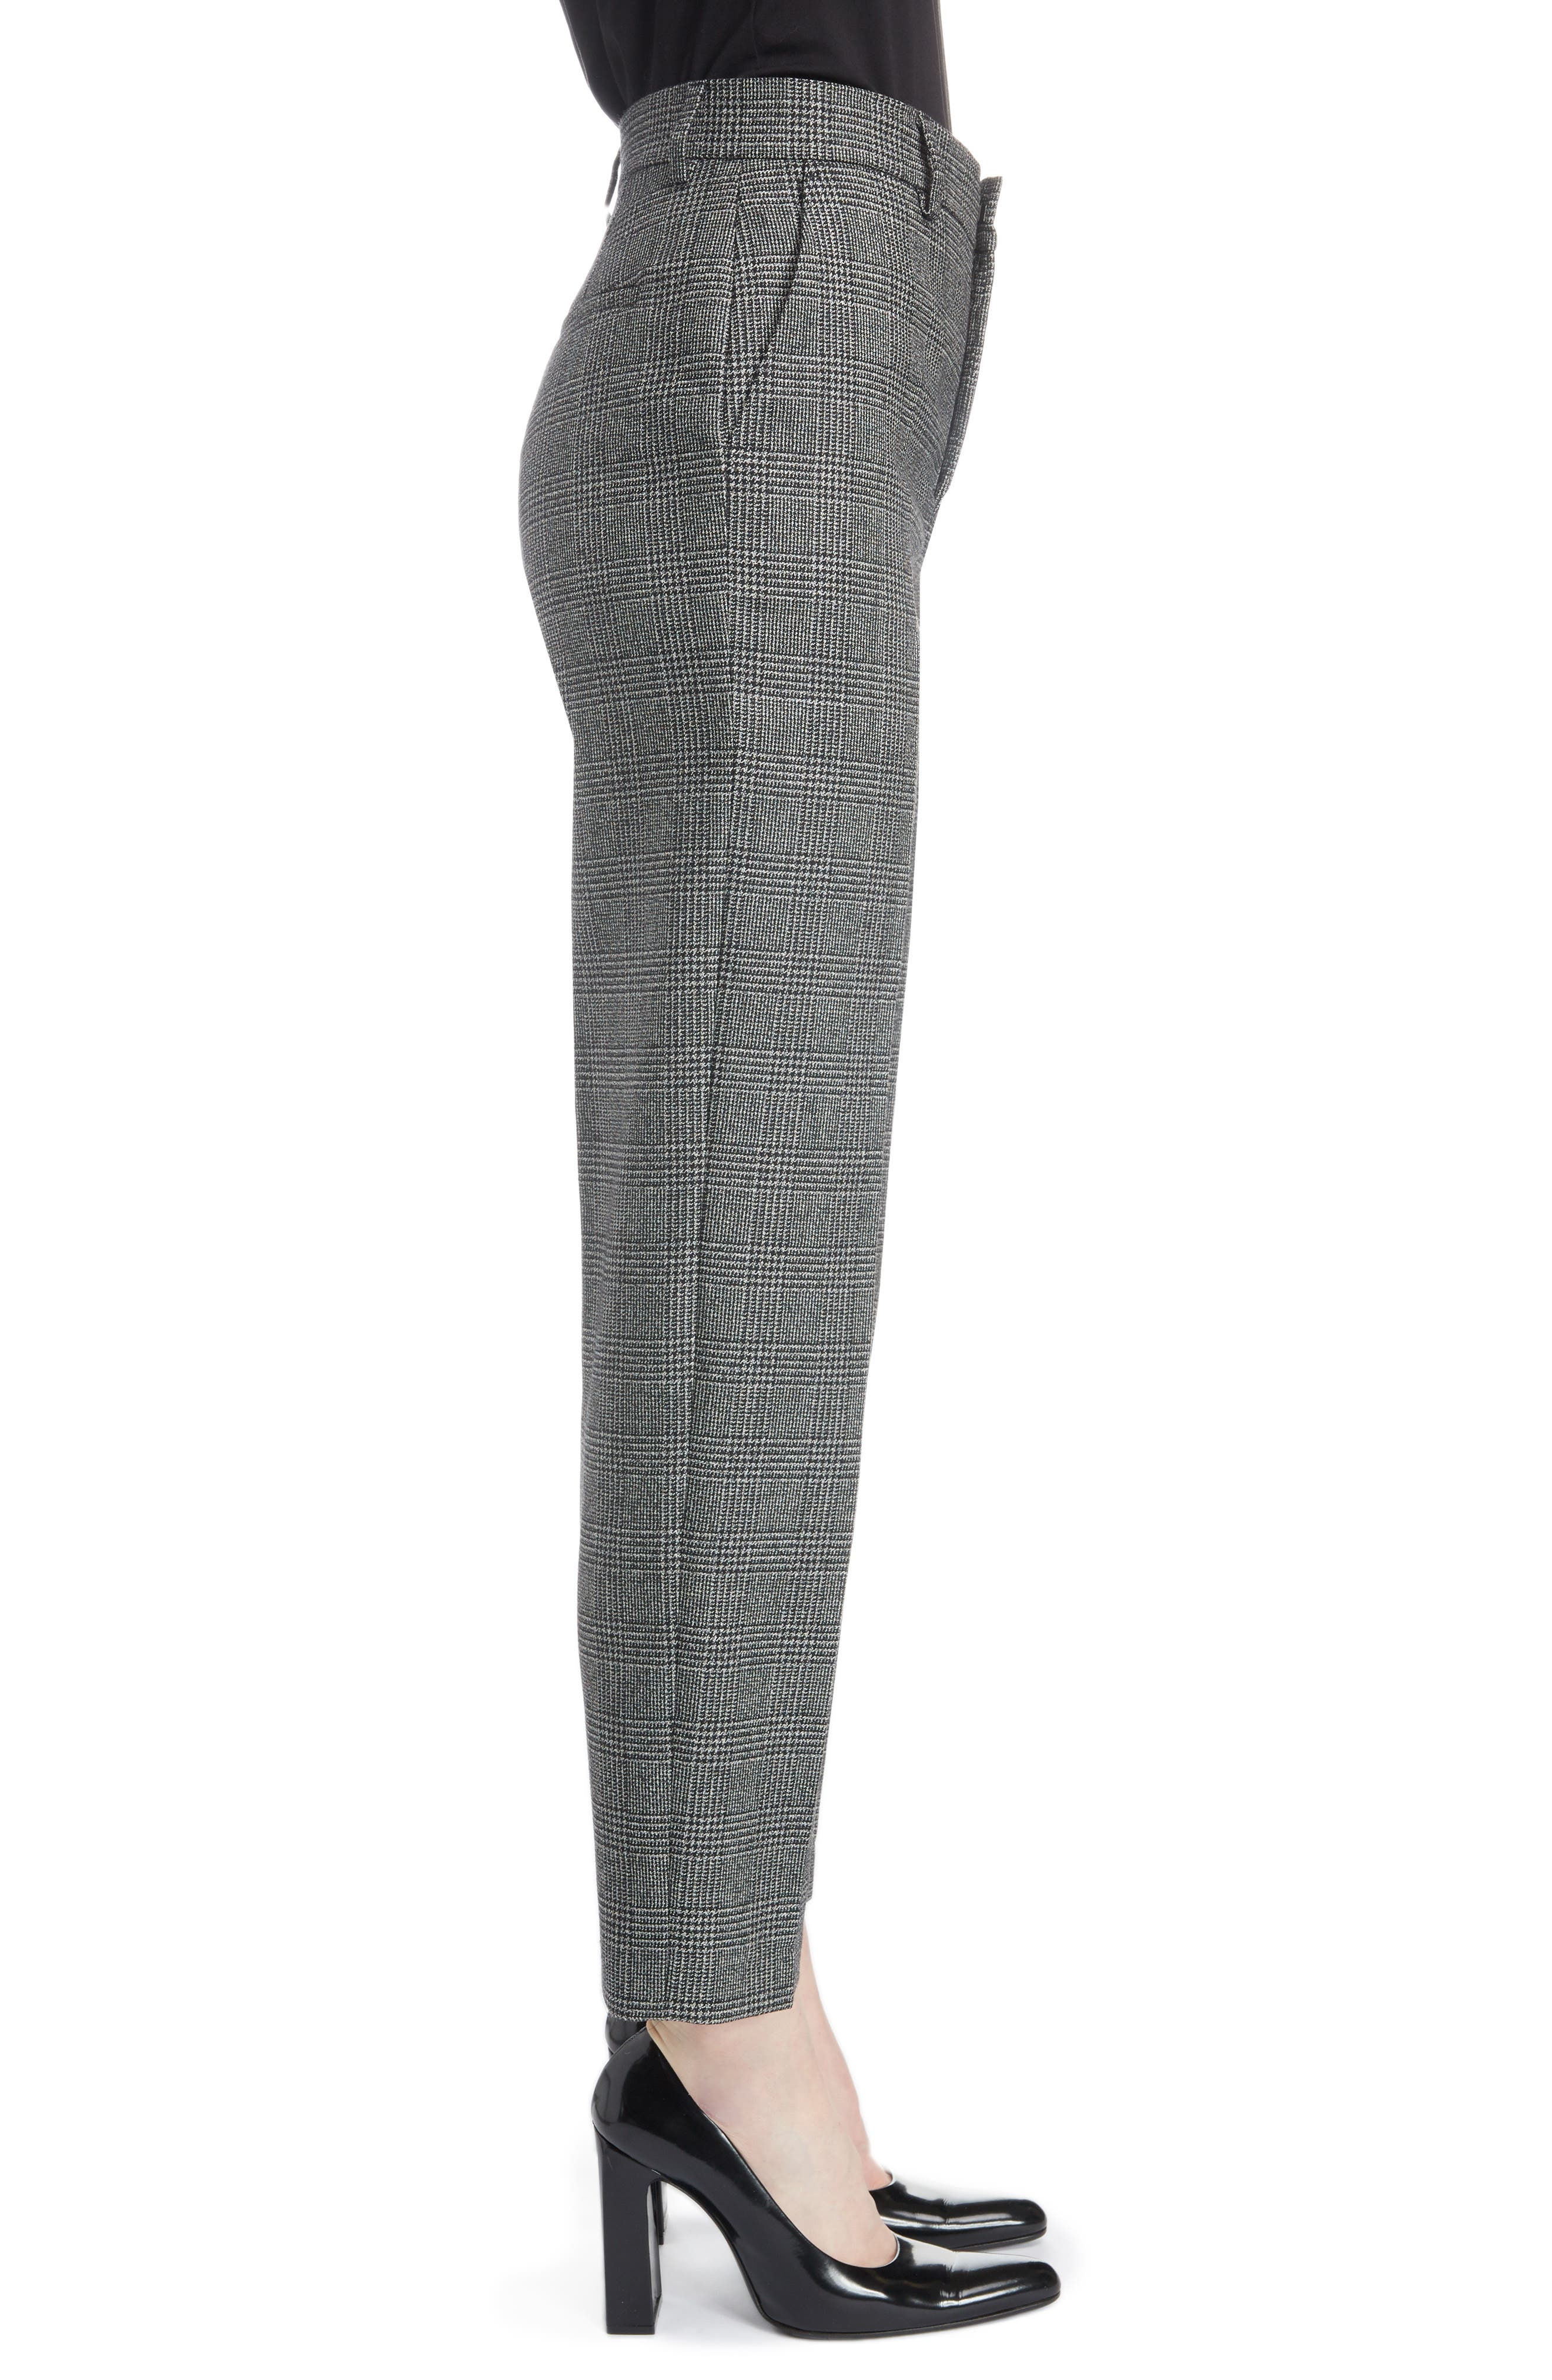 Prince of Wales Wool Carrot Trousers,                             Alternate thumbnail 3, color,                             1070-BLACK/ WHITE